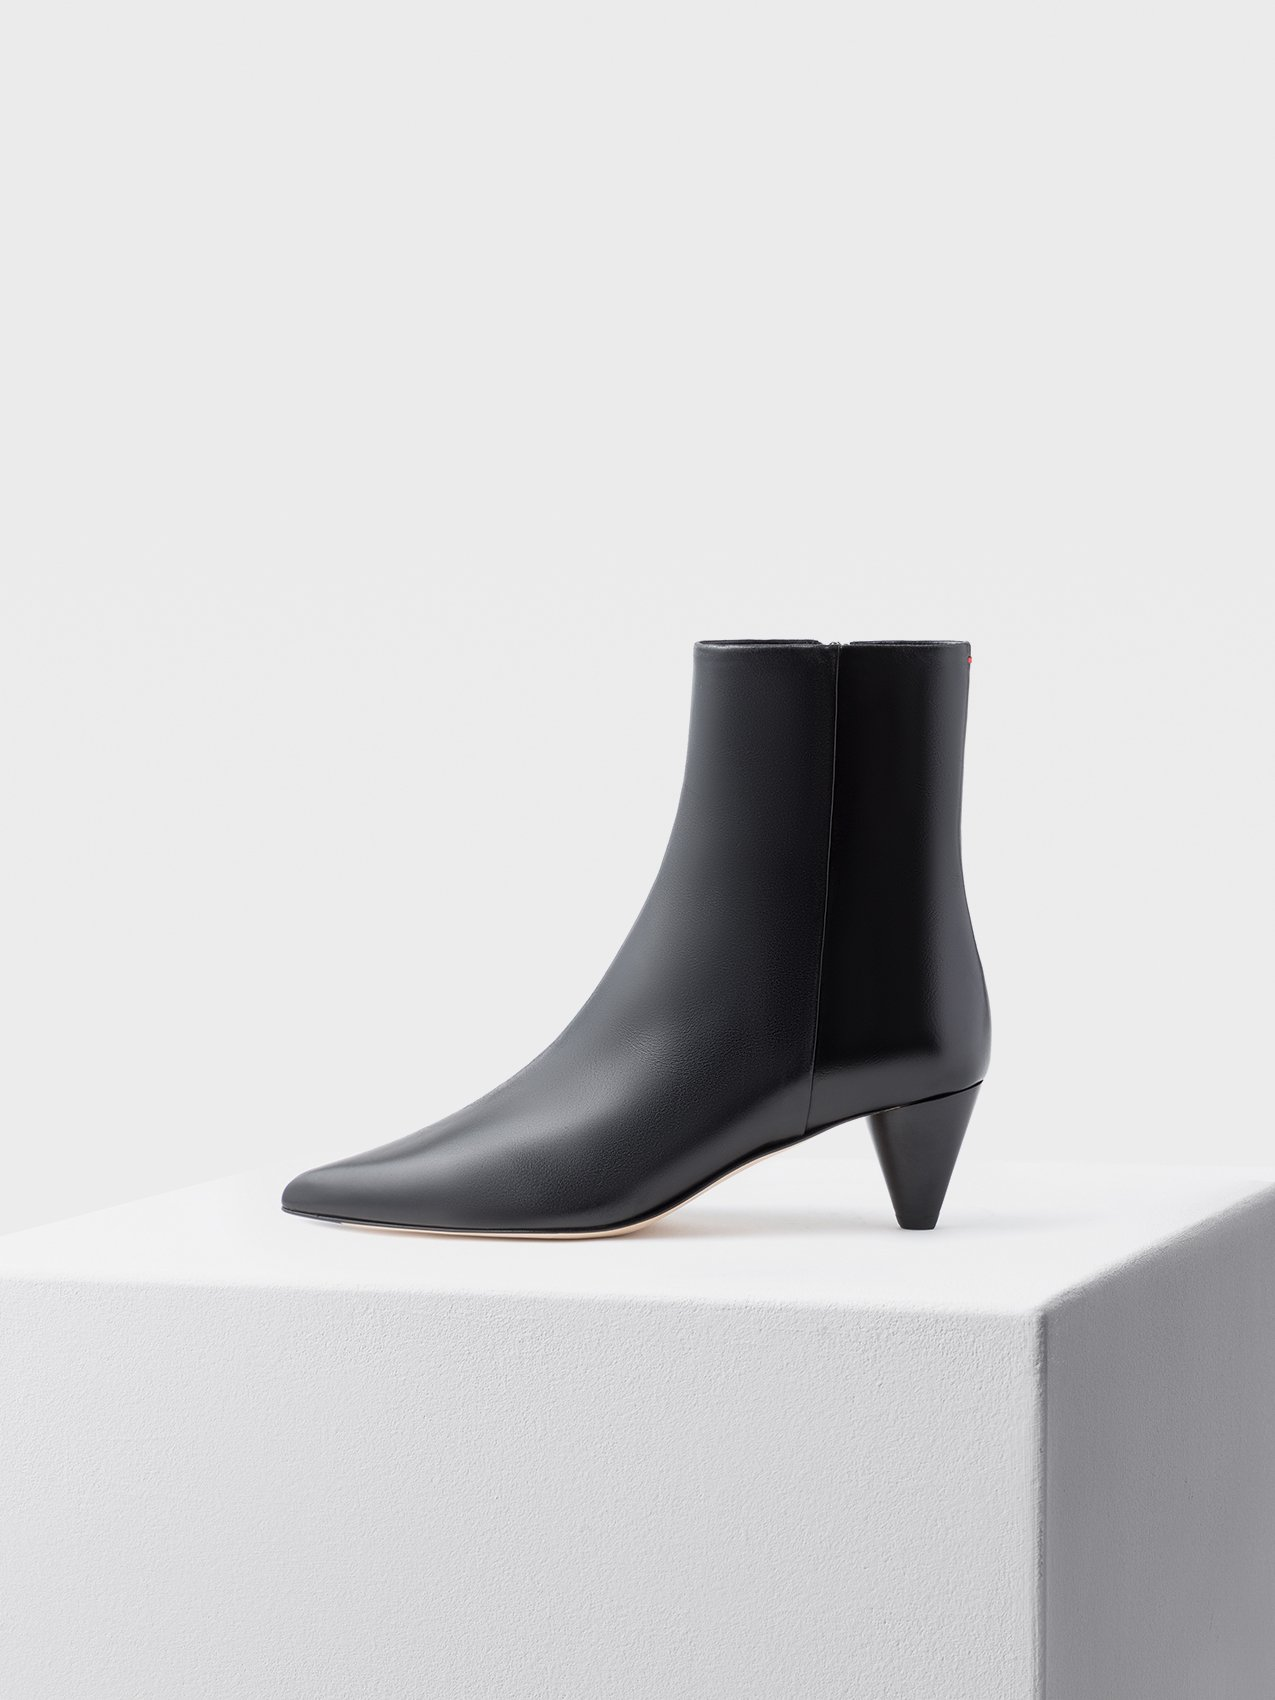 Carly, Ankle Boot, Aeyde, Nappa, Black